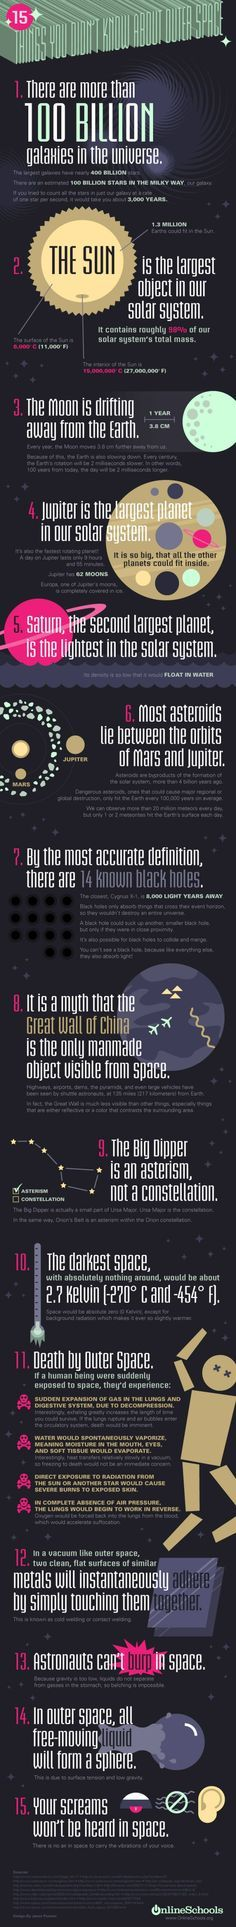 I actually knew most of these facts already...I'm a science nerd. It's the first time I heard that the Little Dipper wasn't a constellation. Time to research!